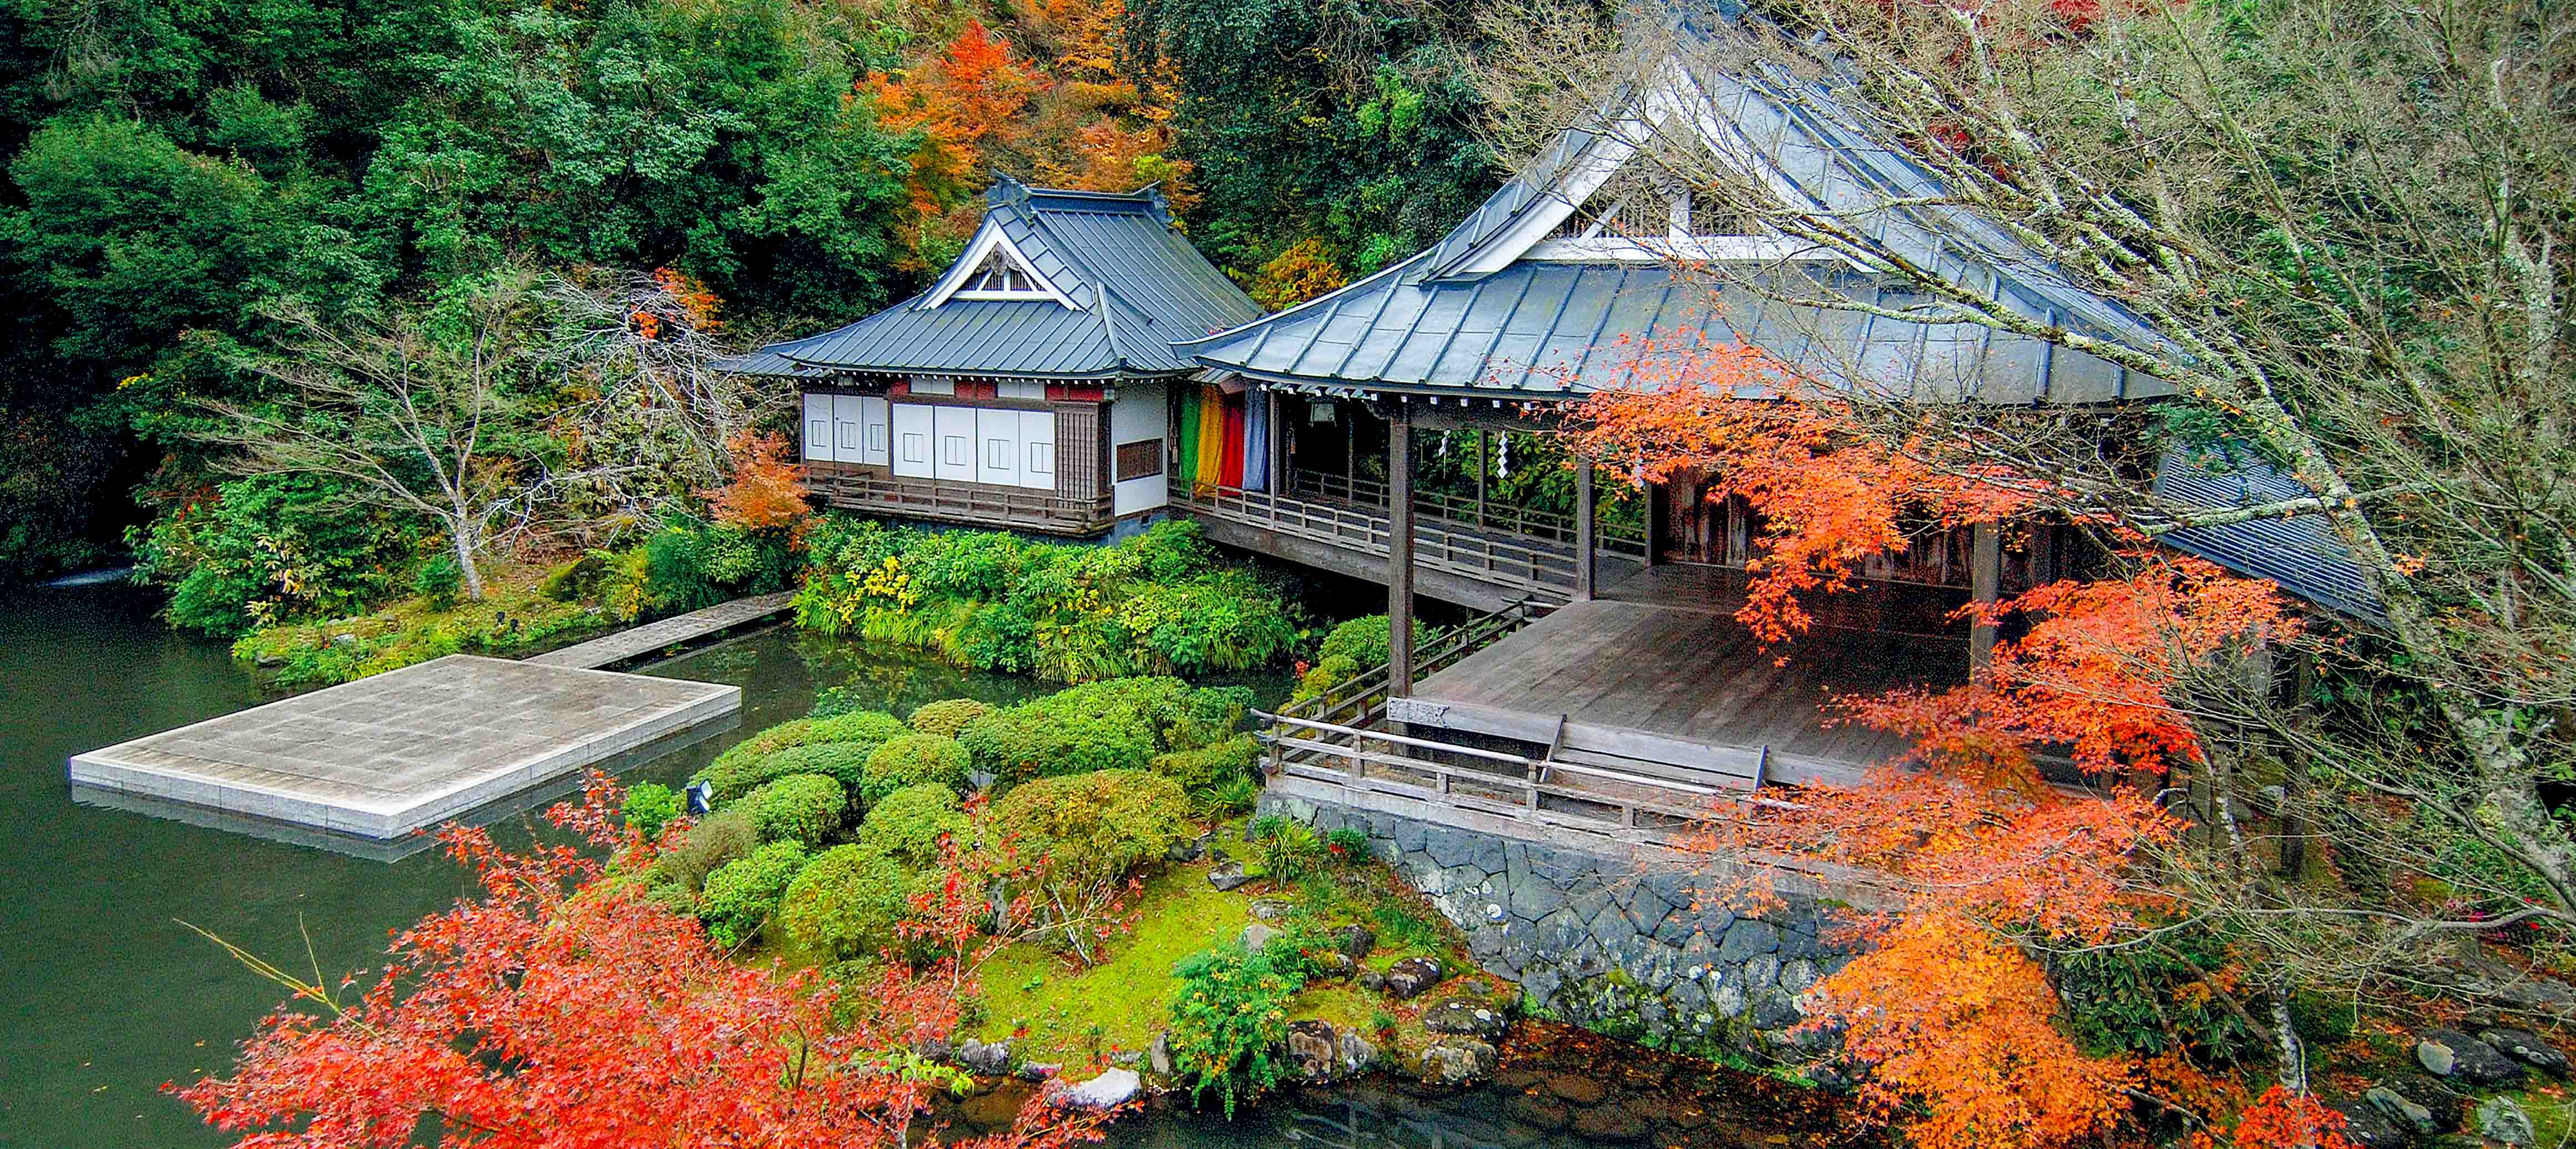 3 Unforgettable Ryokan and Onsen Experiences from Japan ...